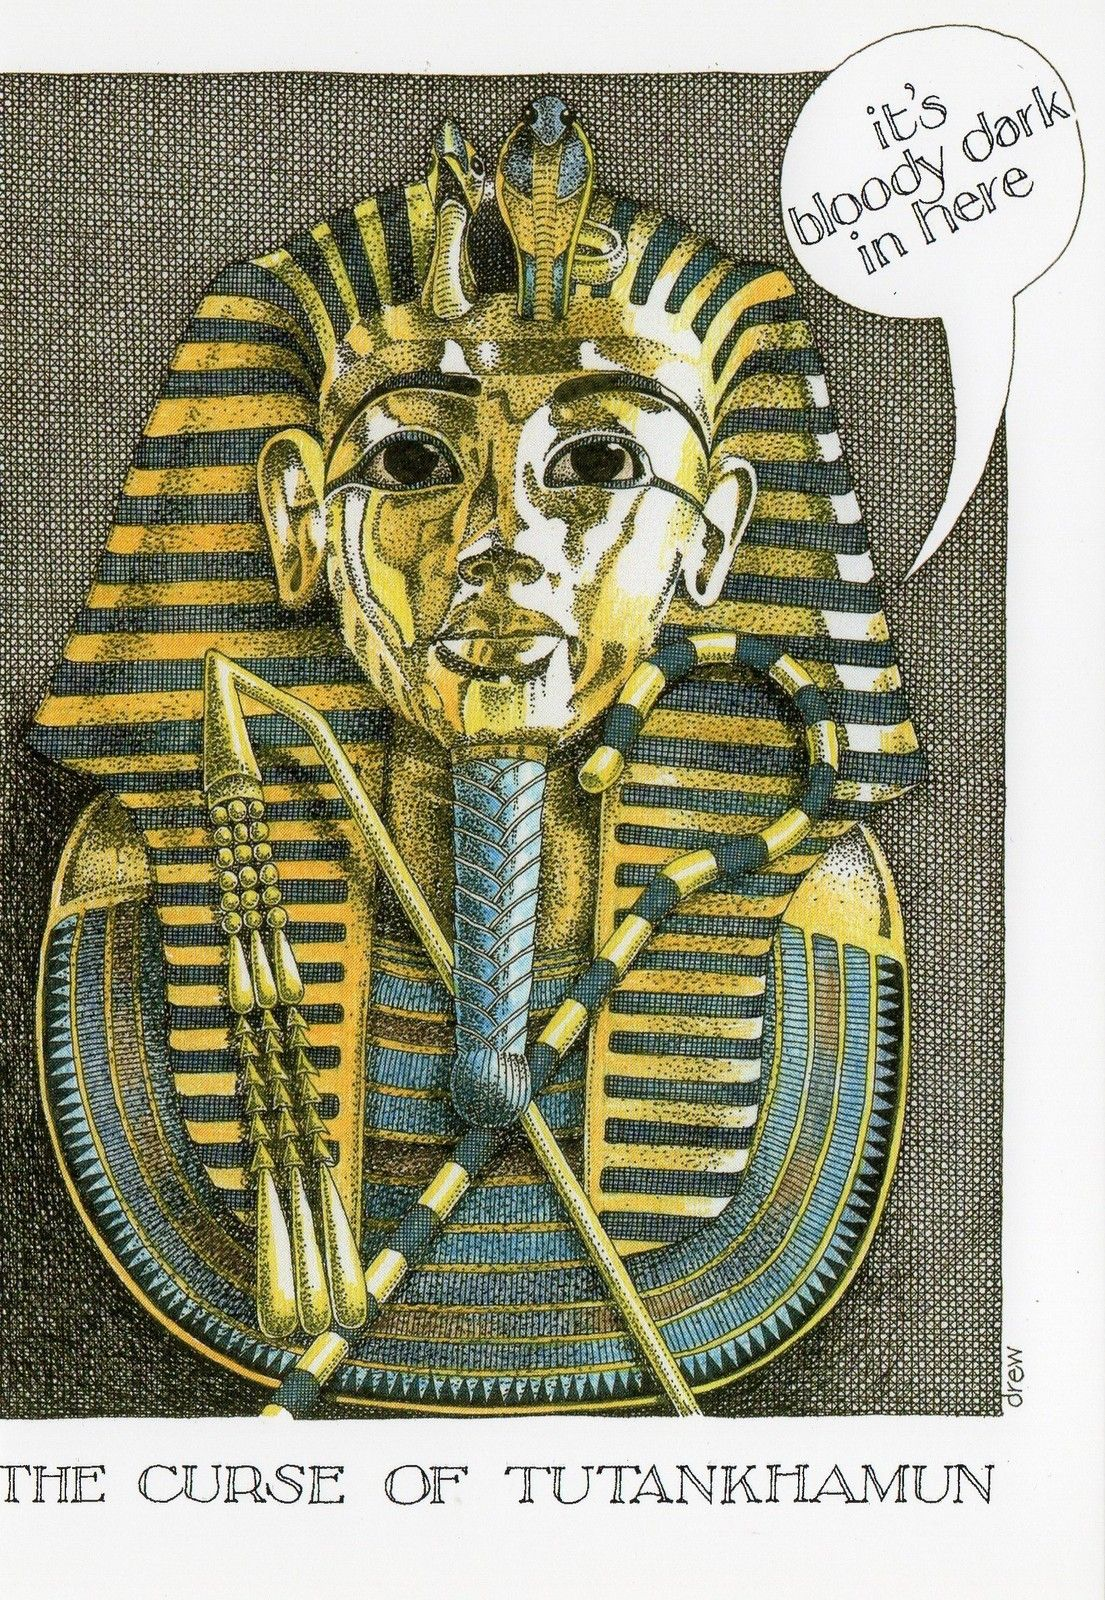 Simon drew funny greetings card curse of tutankhamun ebay tut simon drew funny greetings card curse of tutankhamun ebay kristyandbryce Choice Image